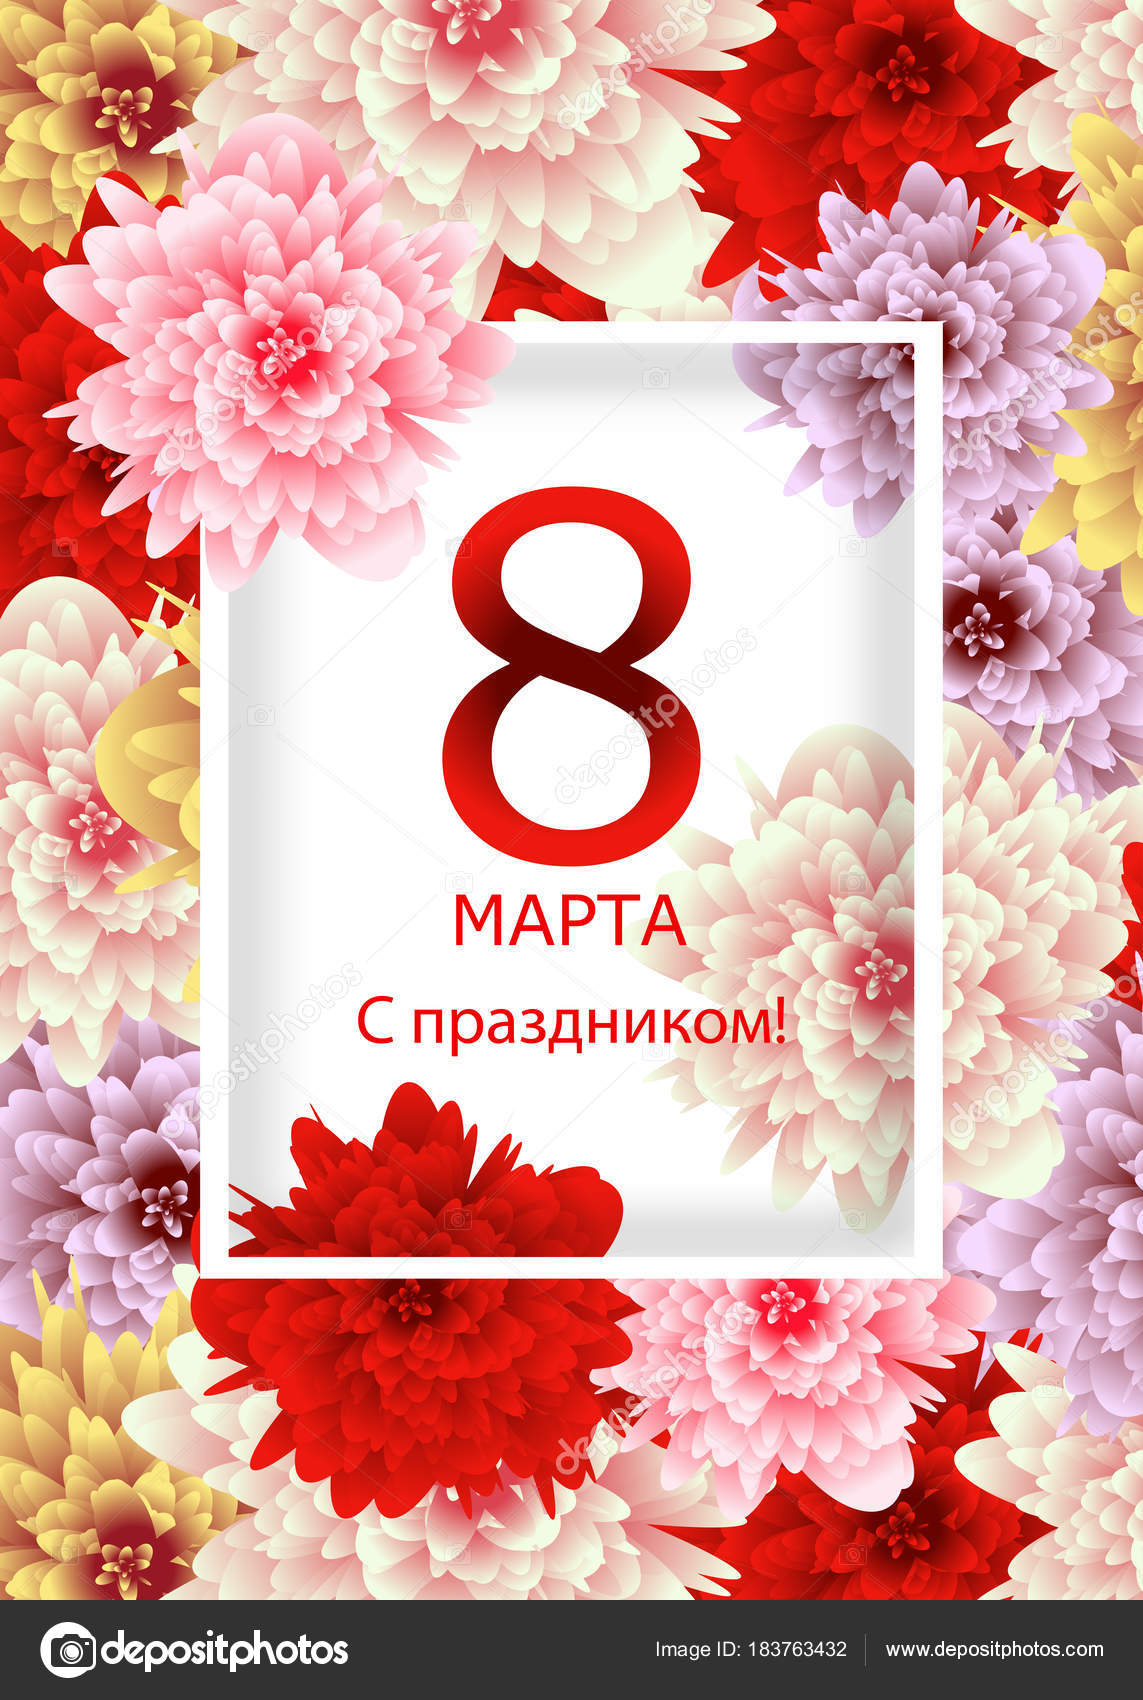 Template greeting card with background flowers march 8 international template greeting card with background flowers march 8 international womens day and the text in russian m4hsunfo